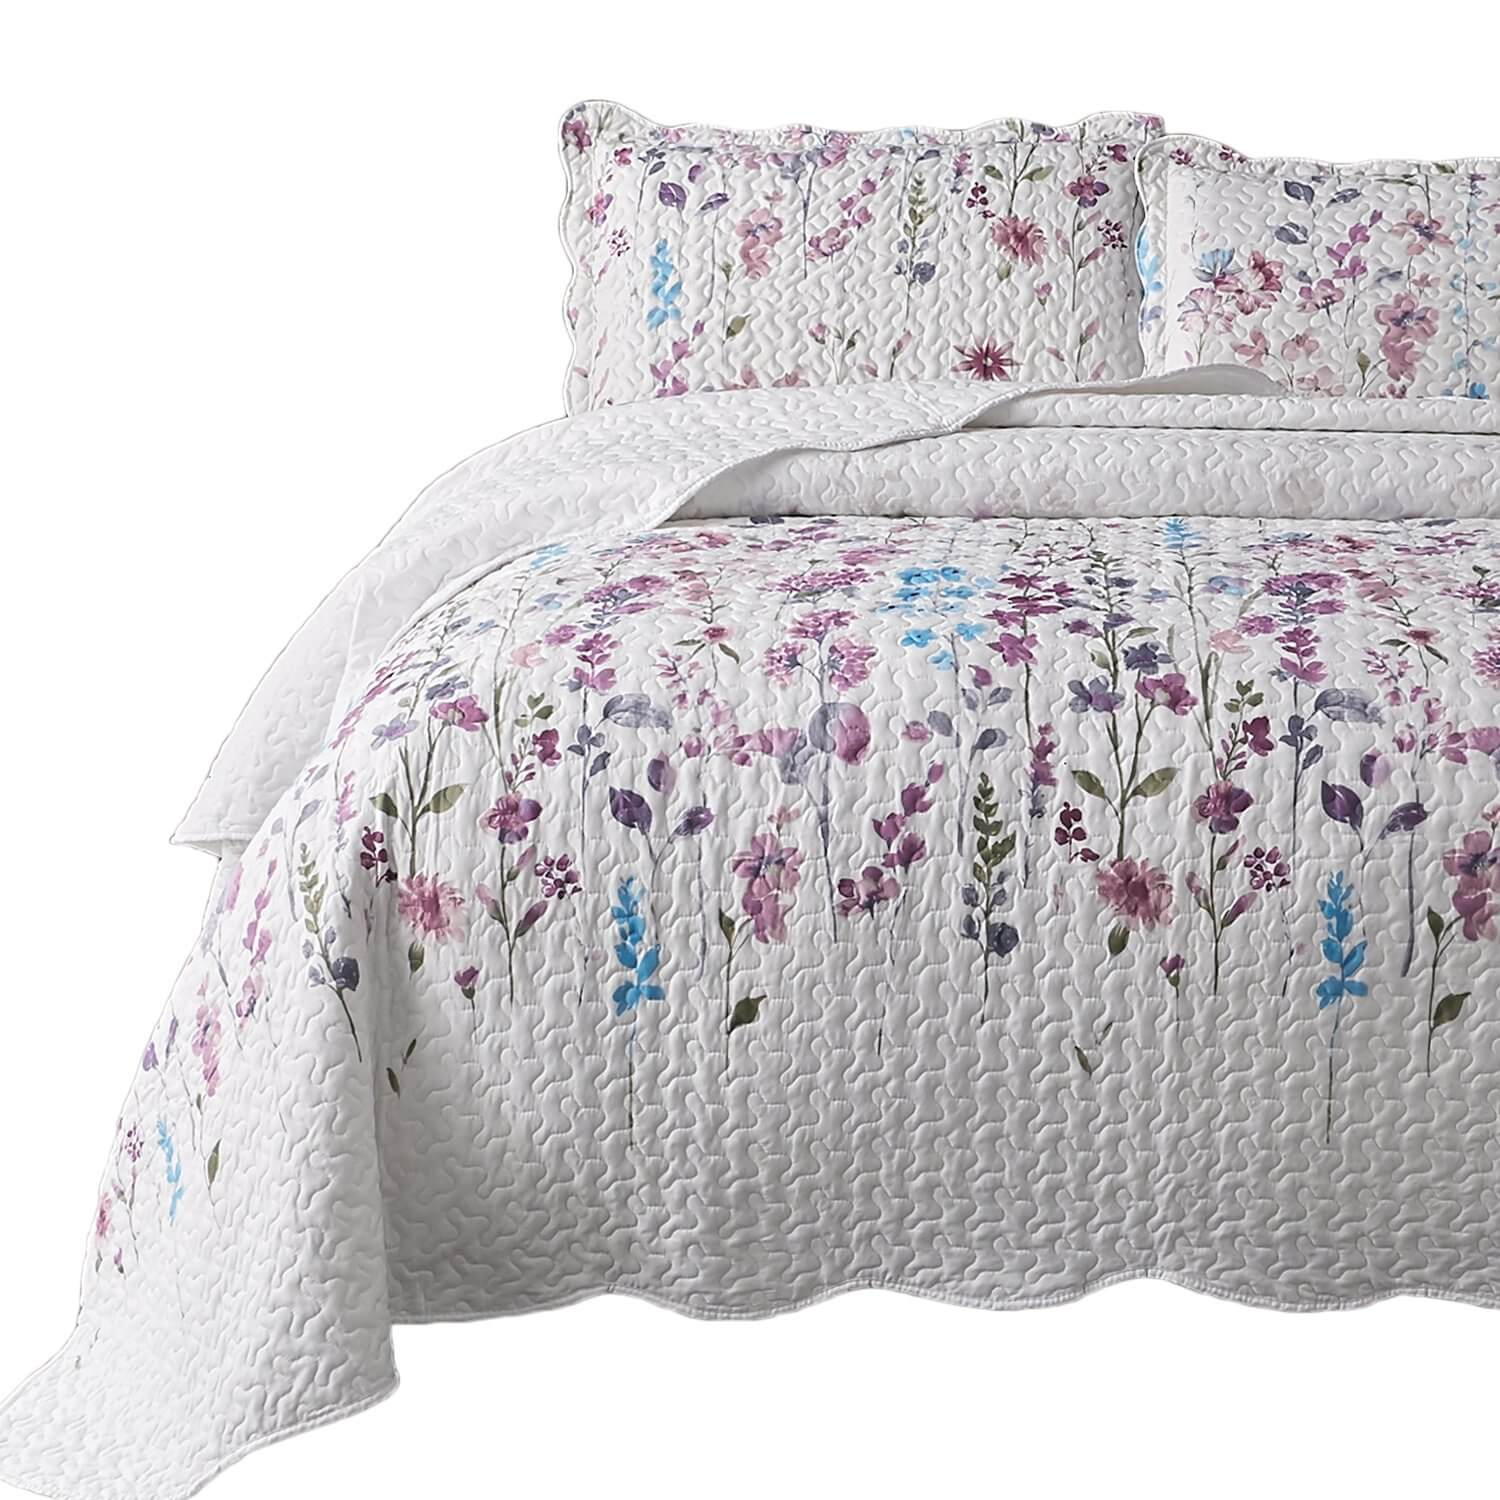 5. Bedsure Printed Quilt Coverlet Set Twin